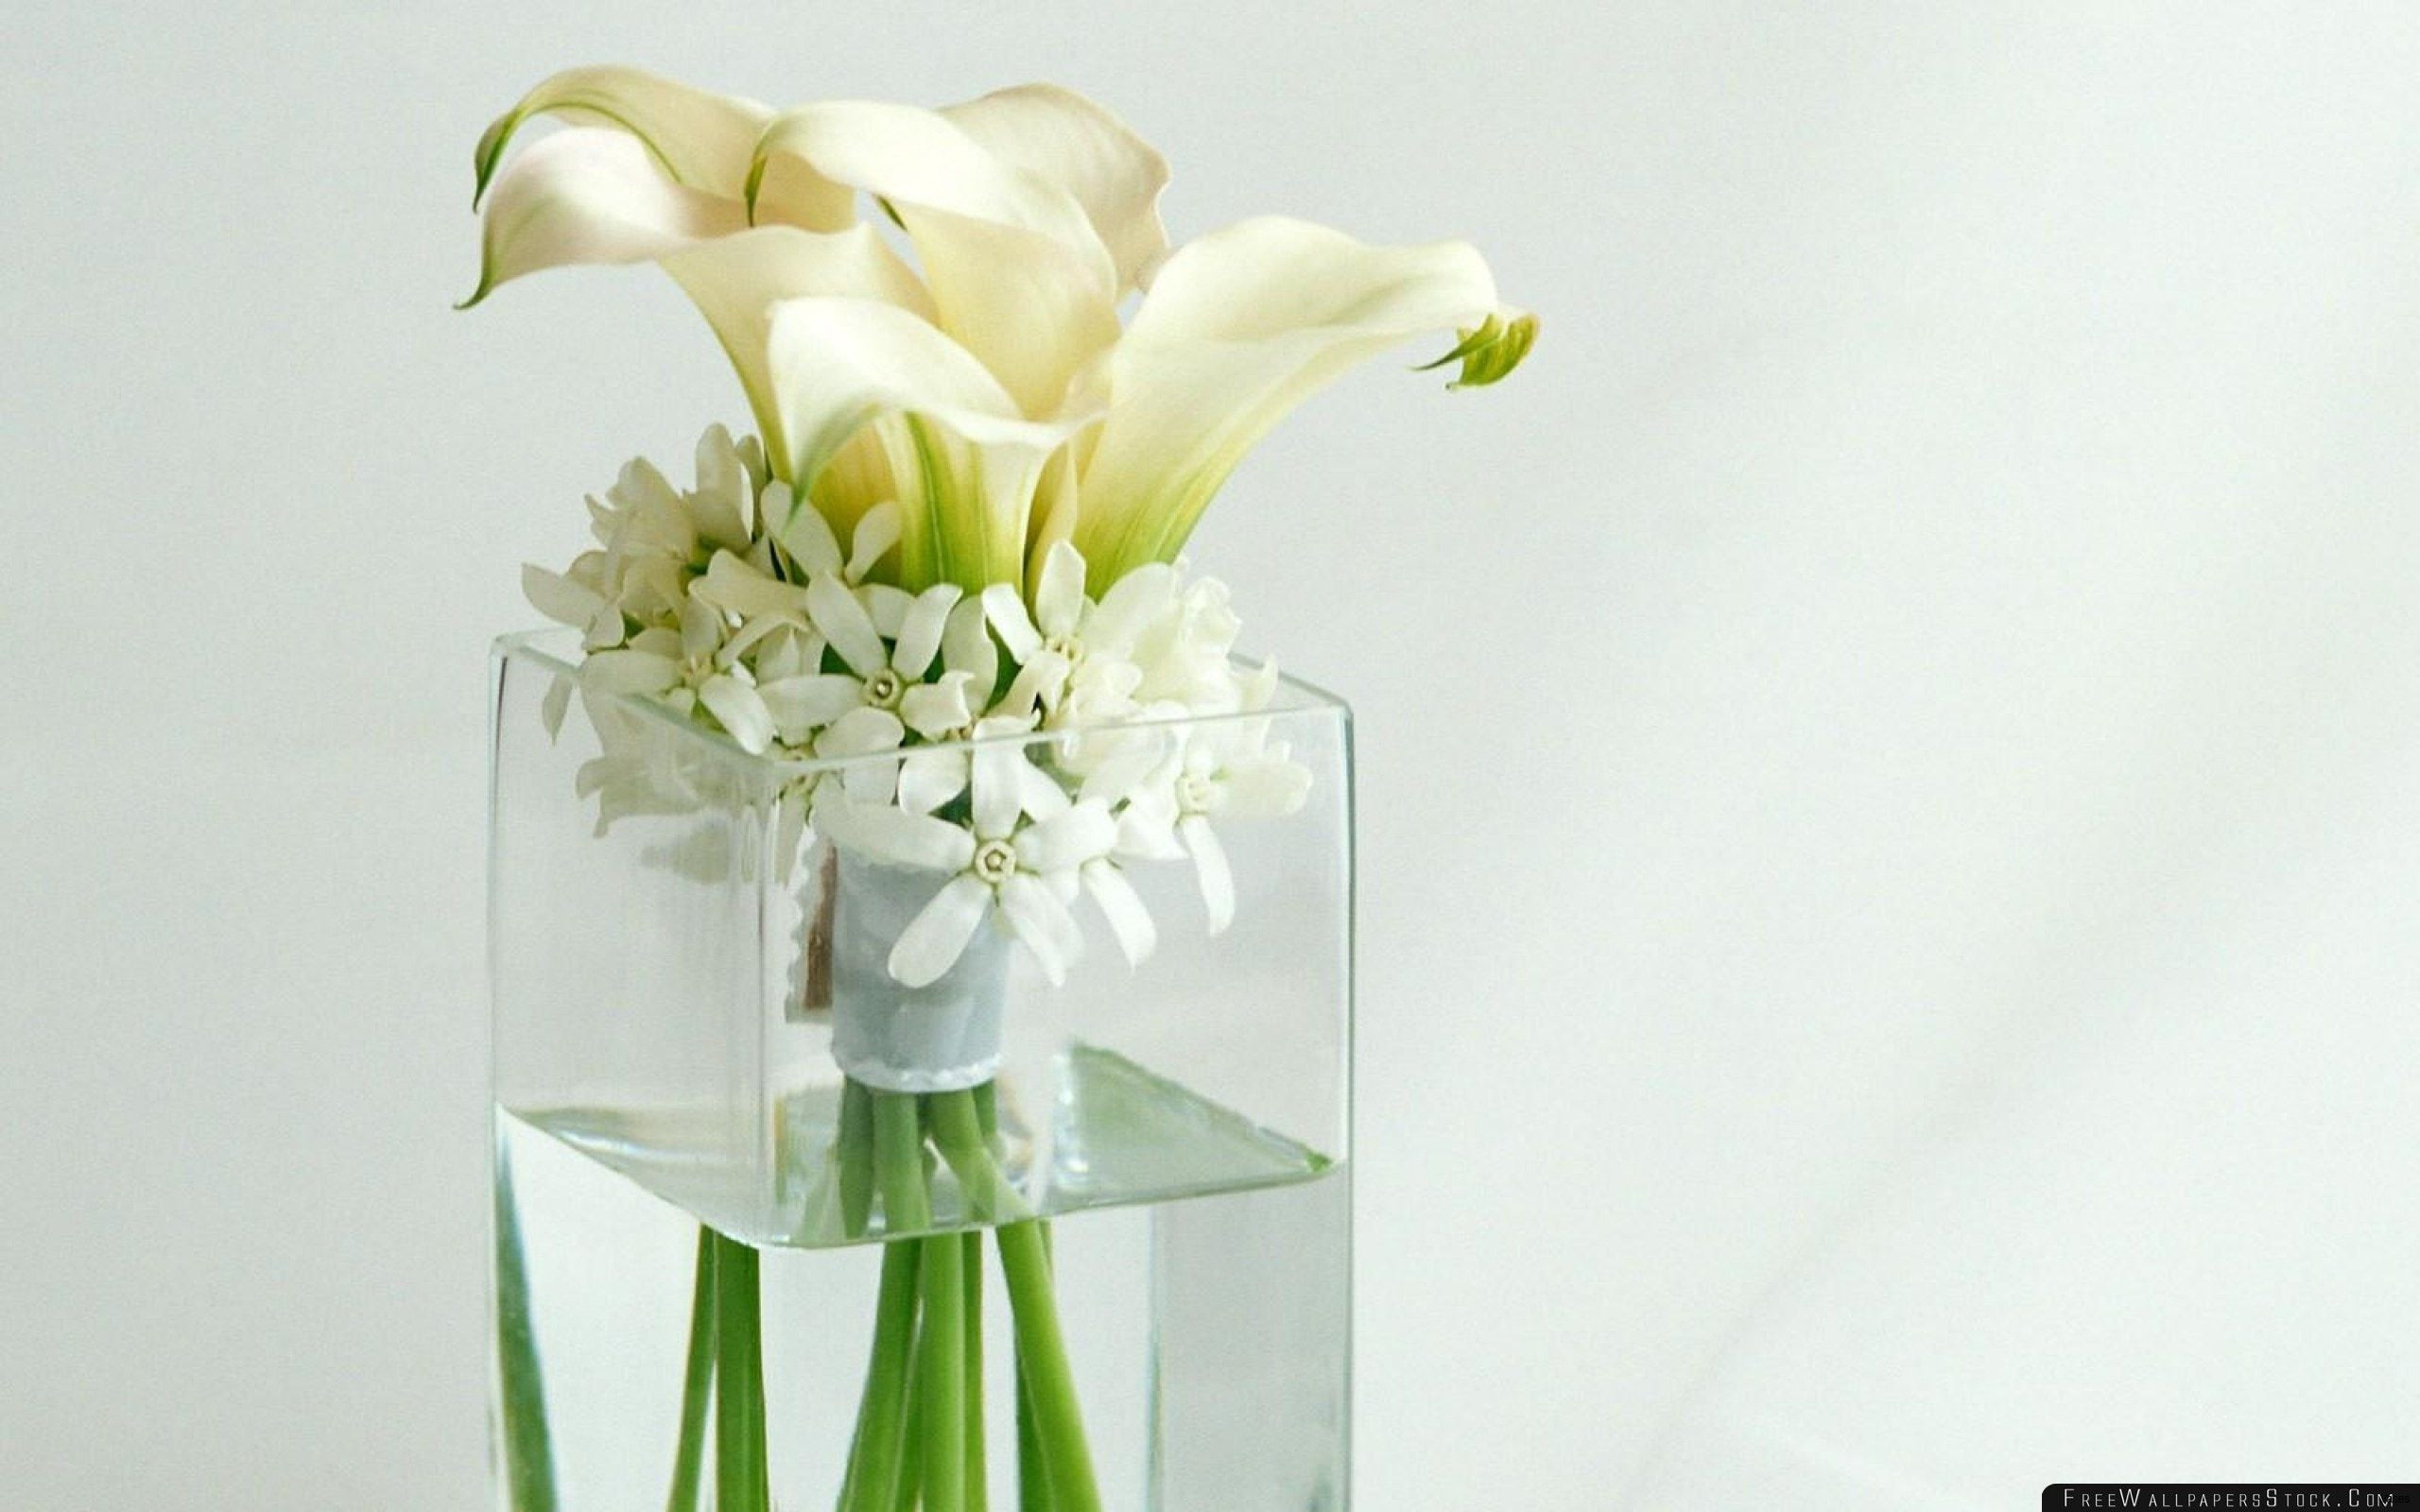 bud vase set of flowers in glass vase new tall vase centerpiece ideas vases flowers with flowers in glass vase new tall vase centerpiece ideas vases flowers in water 0d artificial